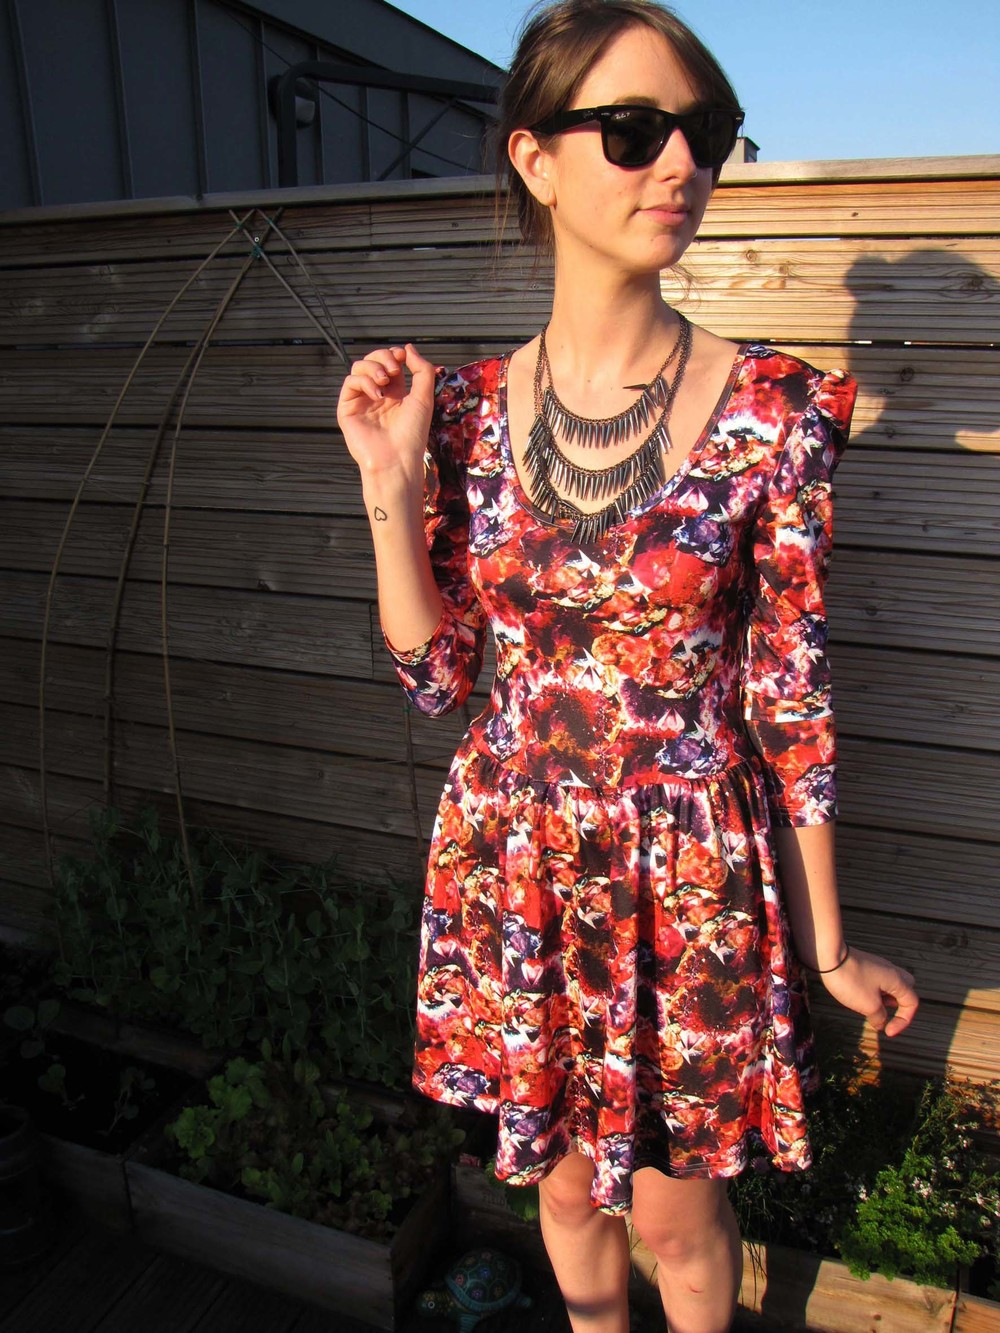 Lisa Williams wearing Whistle & Wolf Jewel Print Skater Dress.